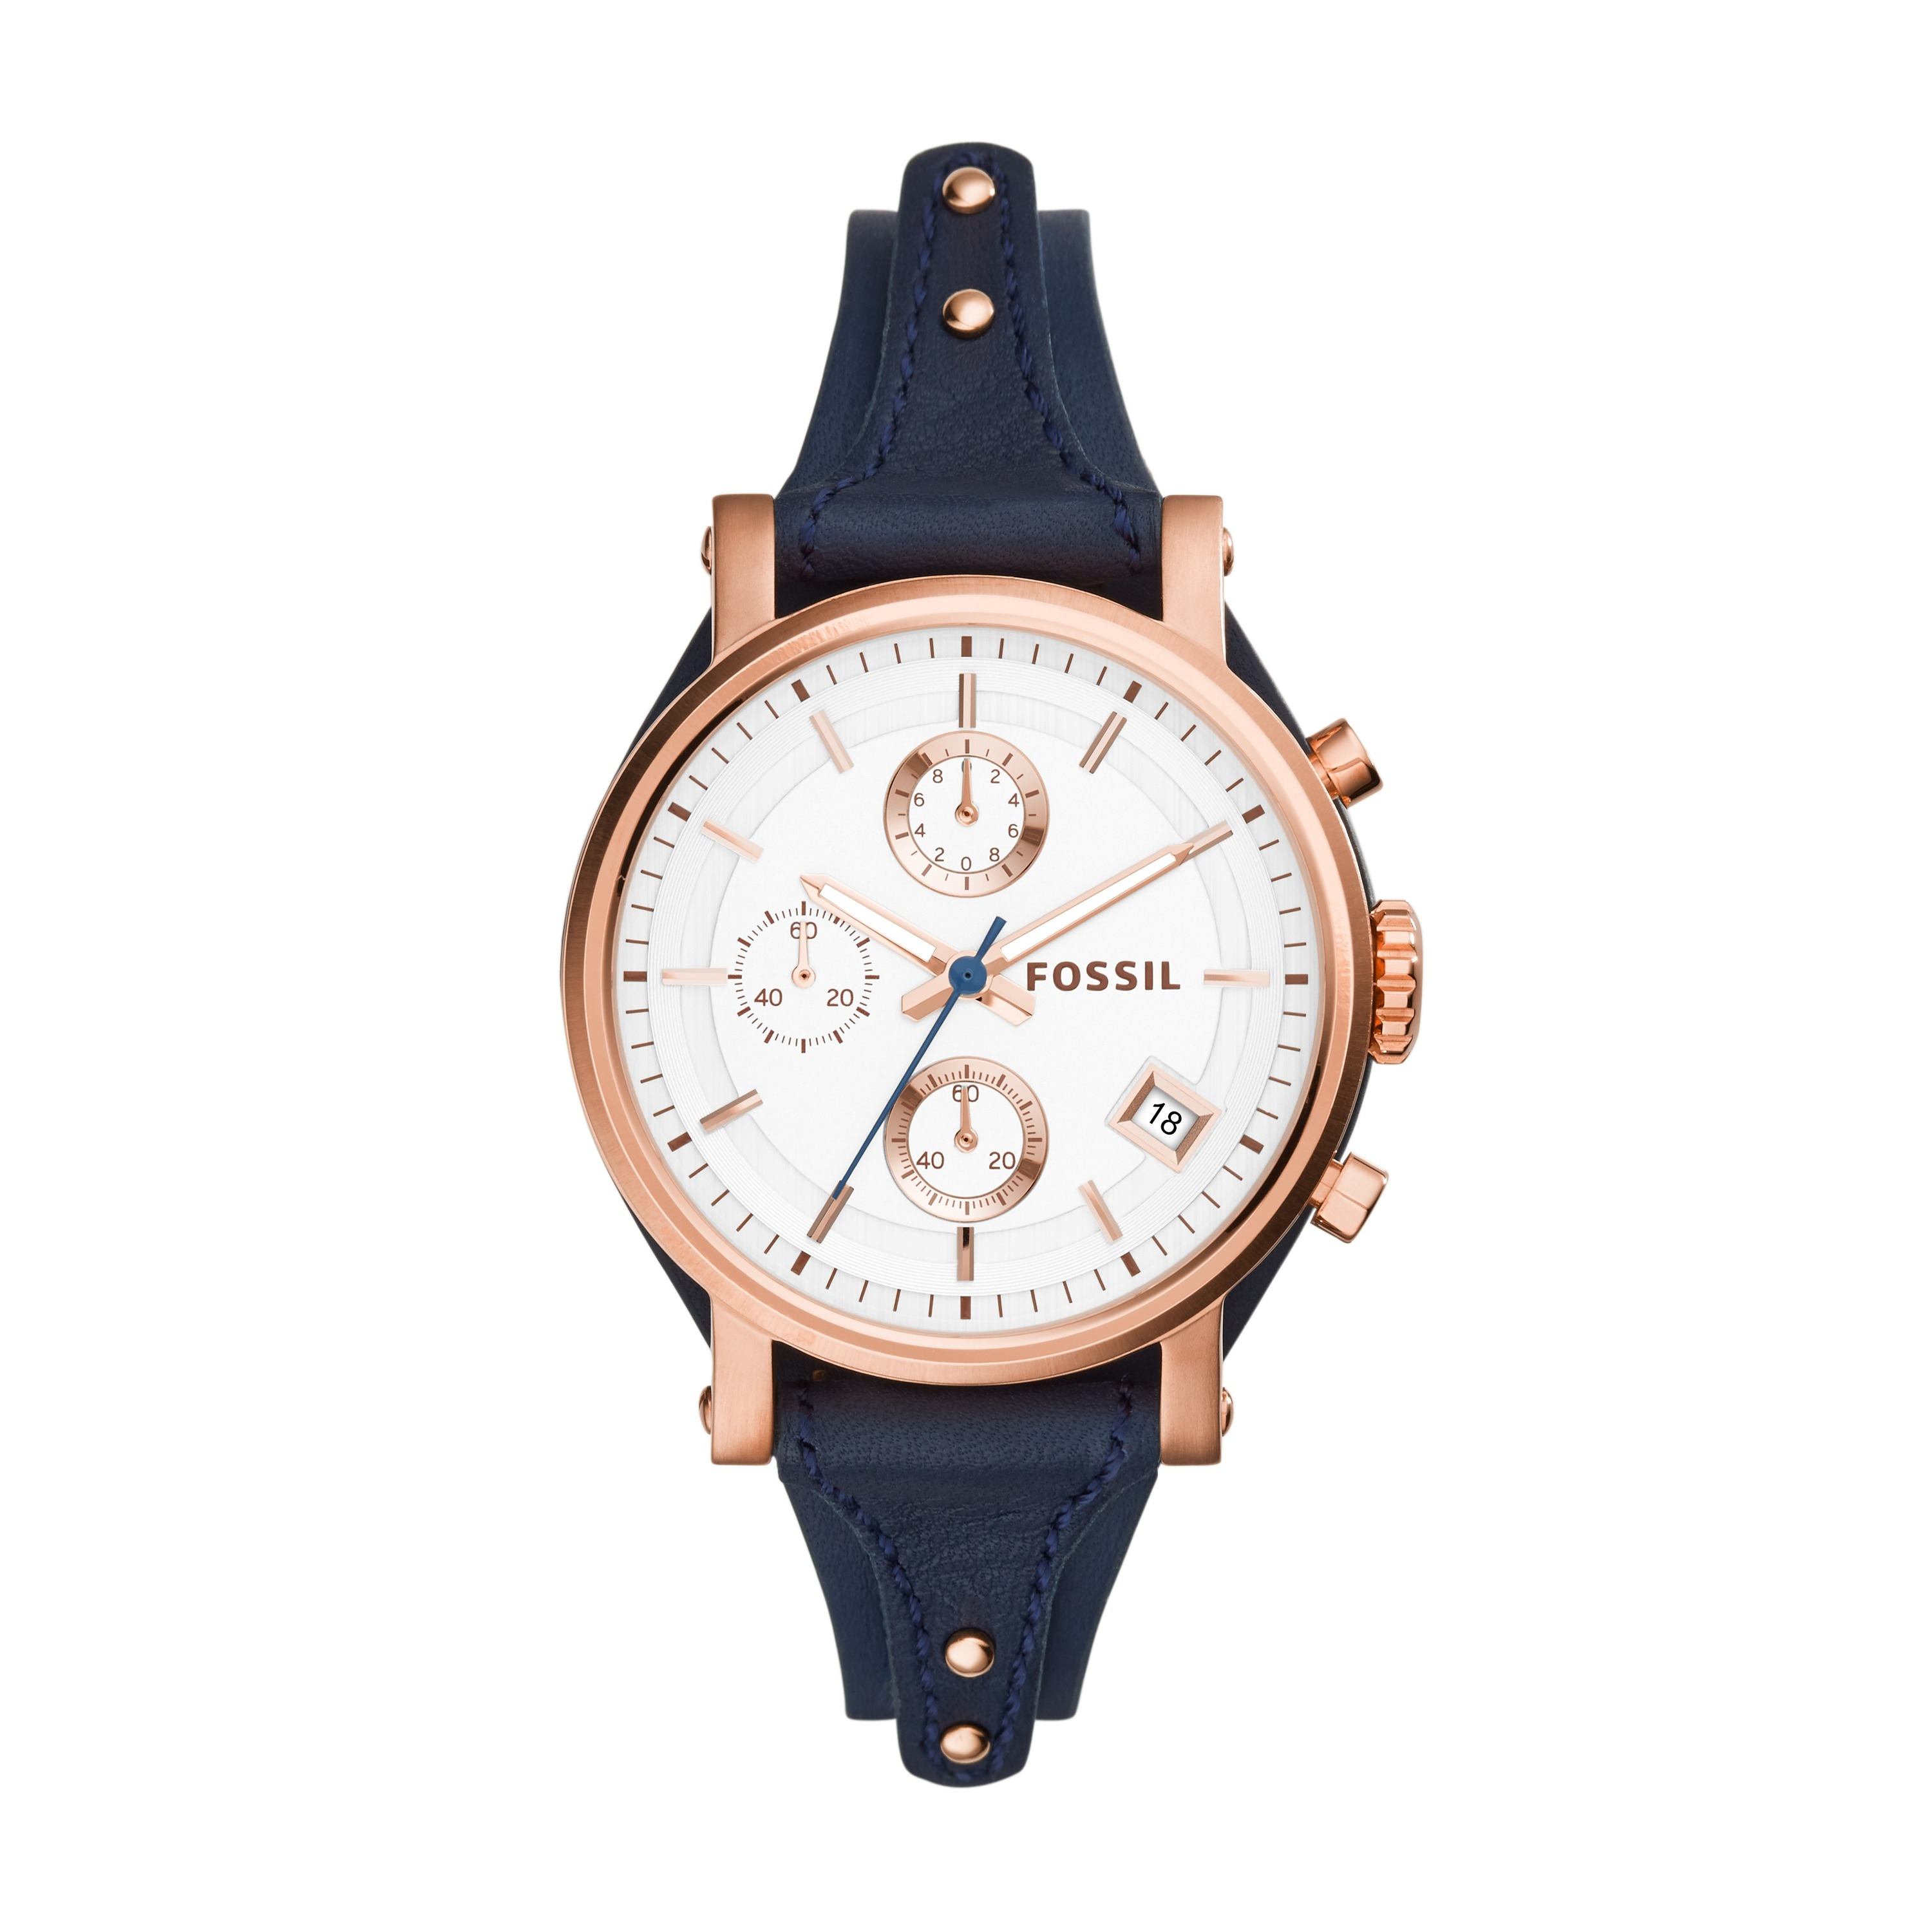 MONTRE FOSSIL ORIGINAL BOY FRIEND BRACELET CUIR BLEU ES3838